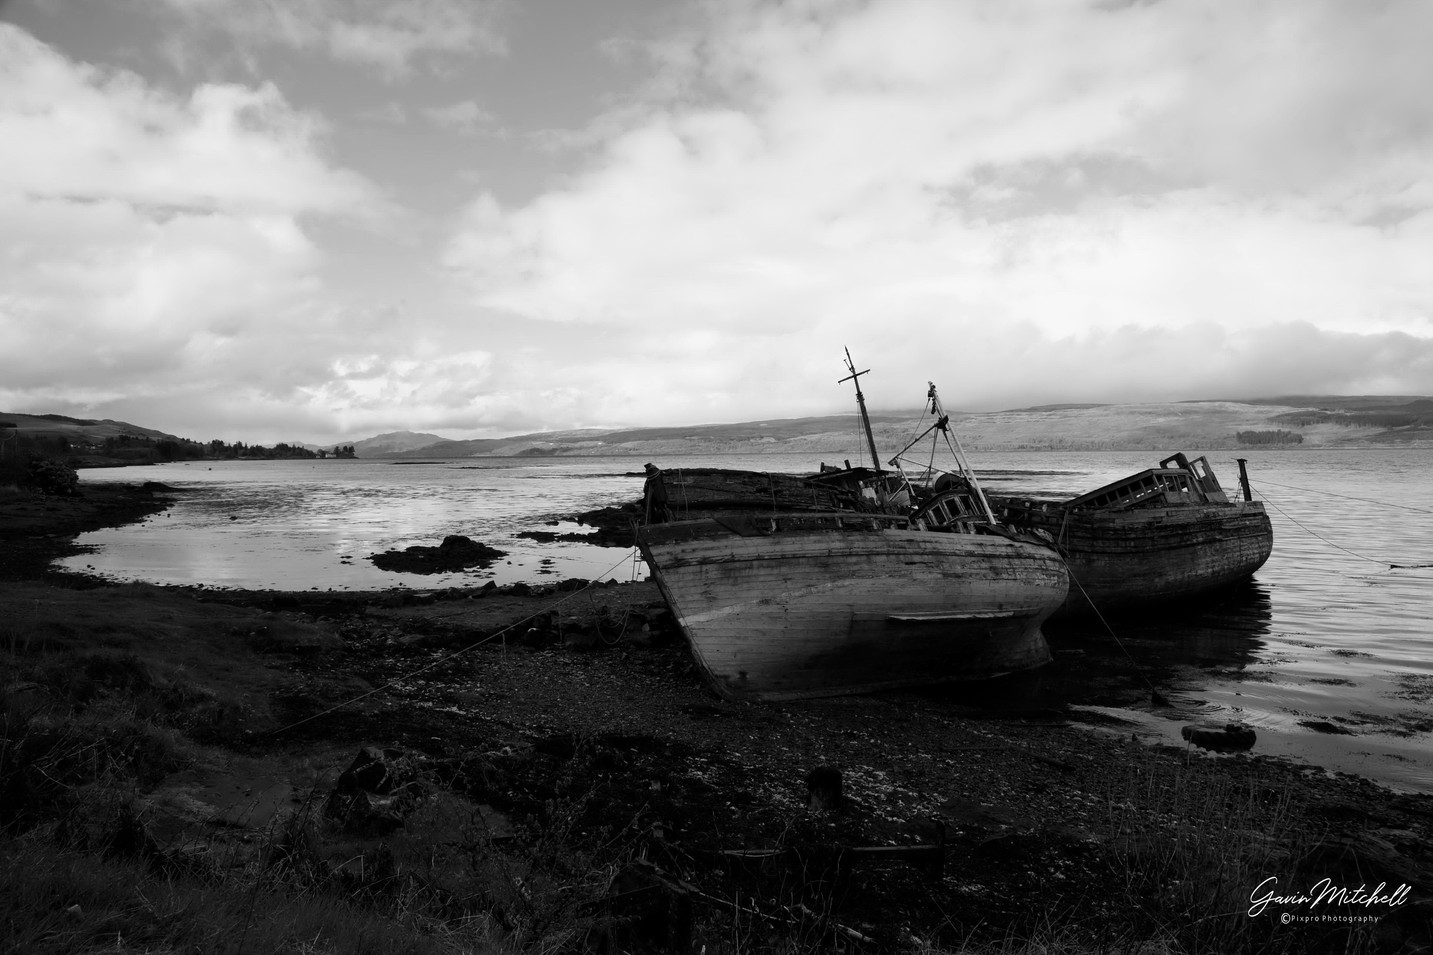 Boats on Mull